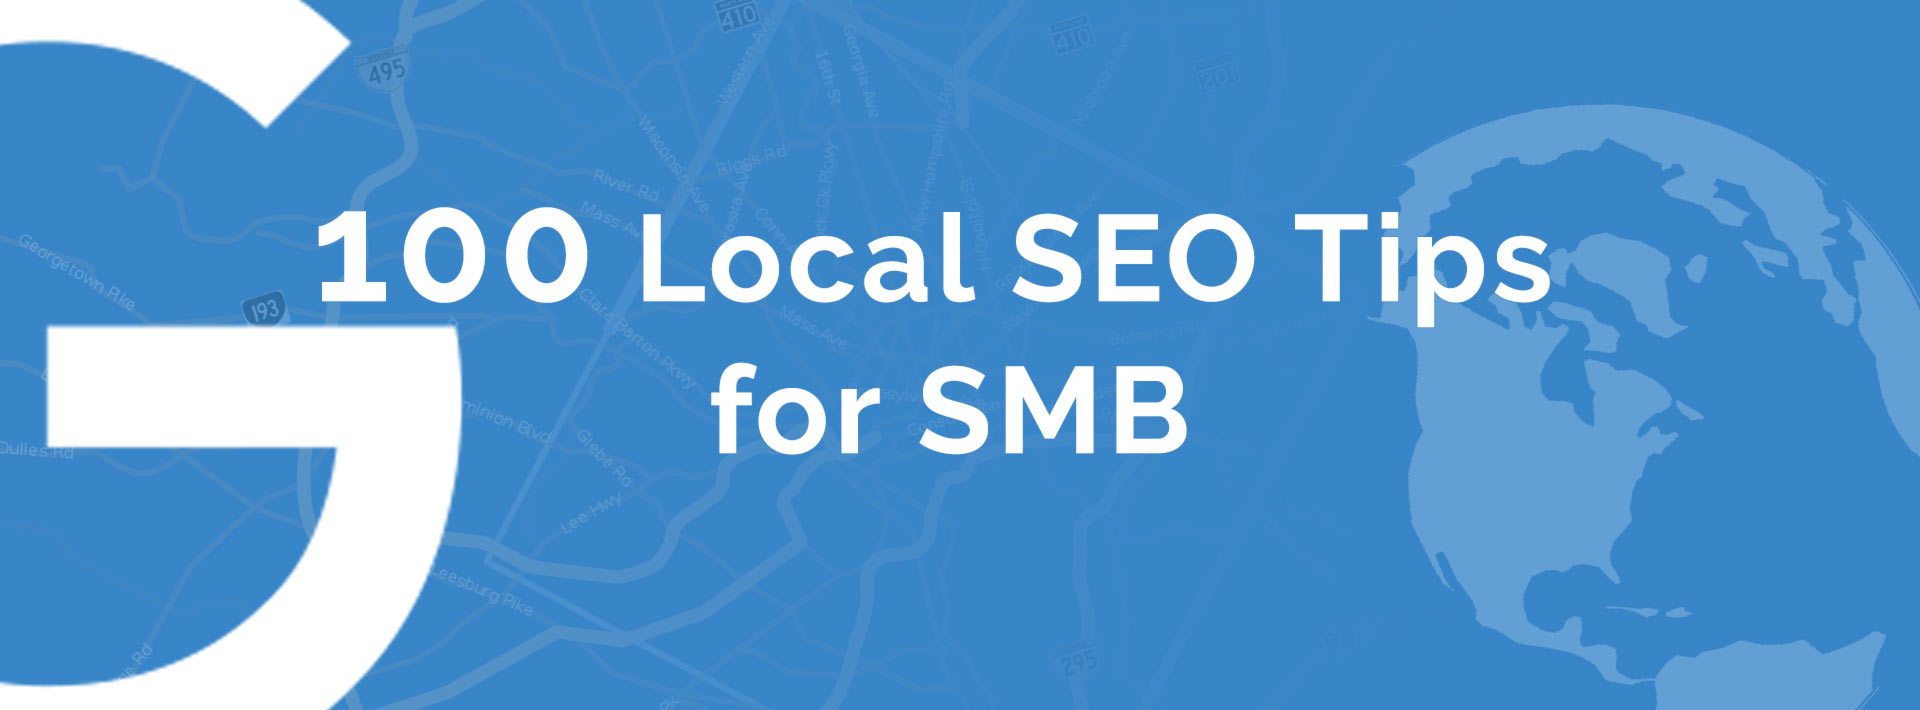 100 local SEO Tips for SMB Checklist 2017-2018 – SEOpie